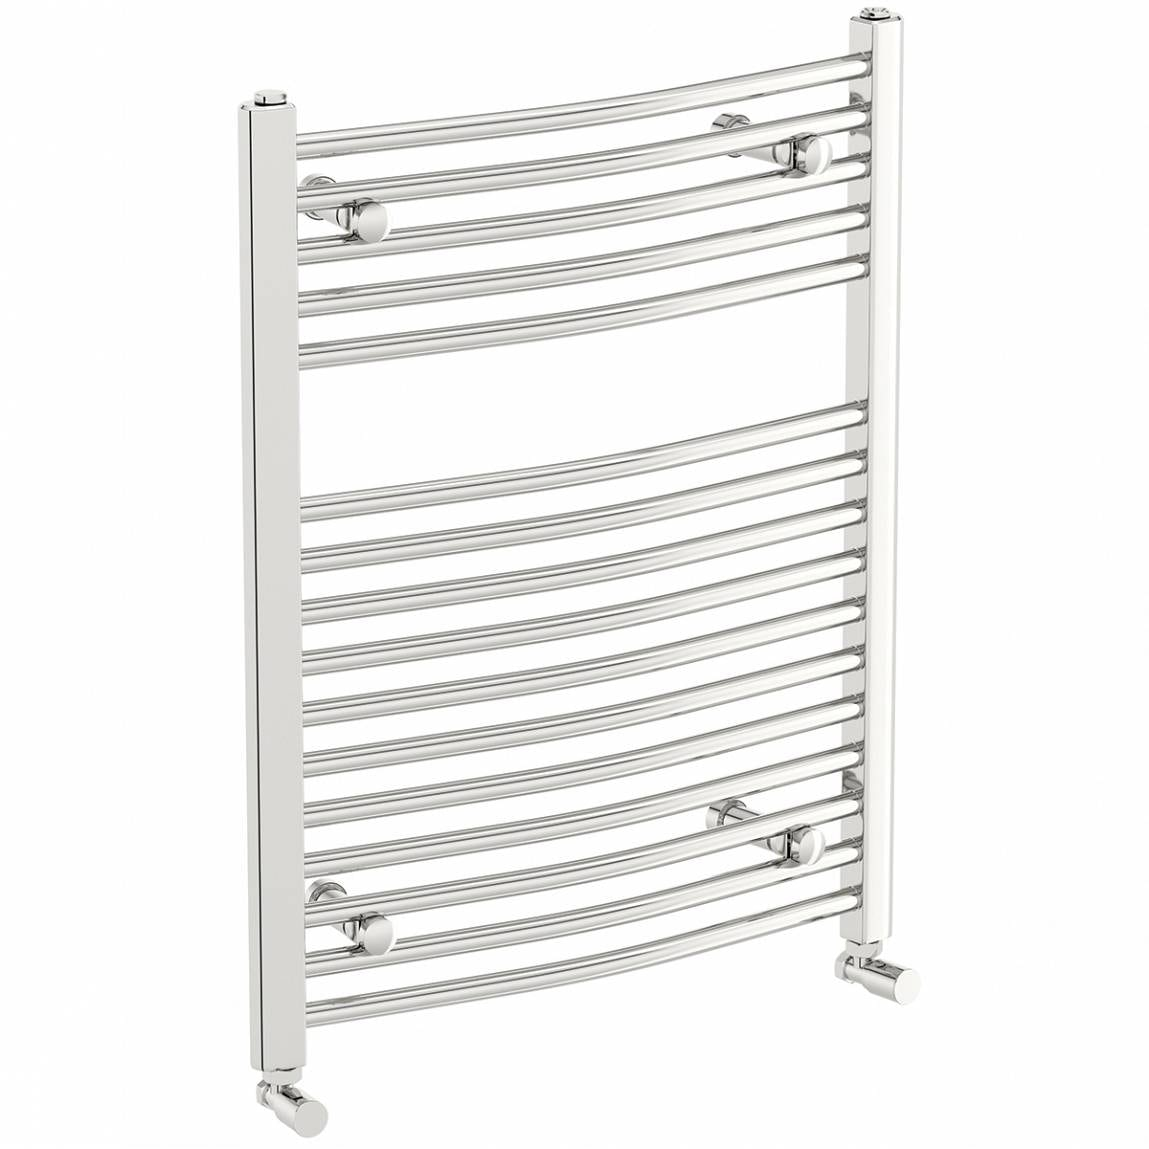 Orchard Elsdon heated towel rail 750 x 600